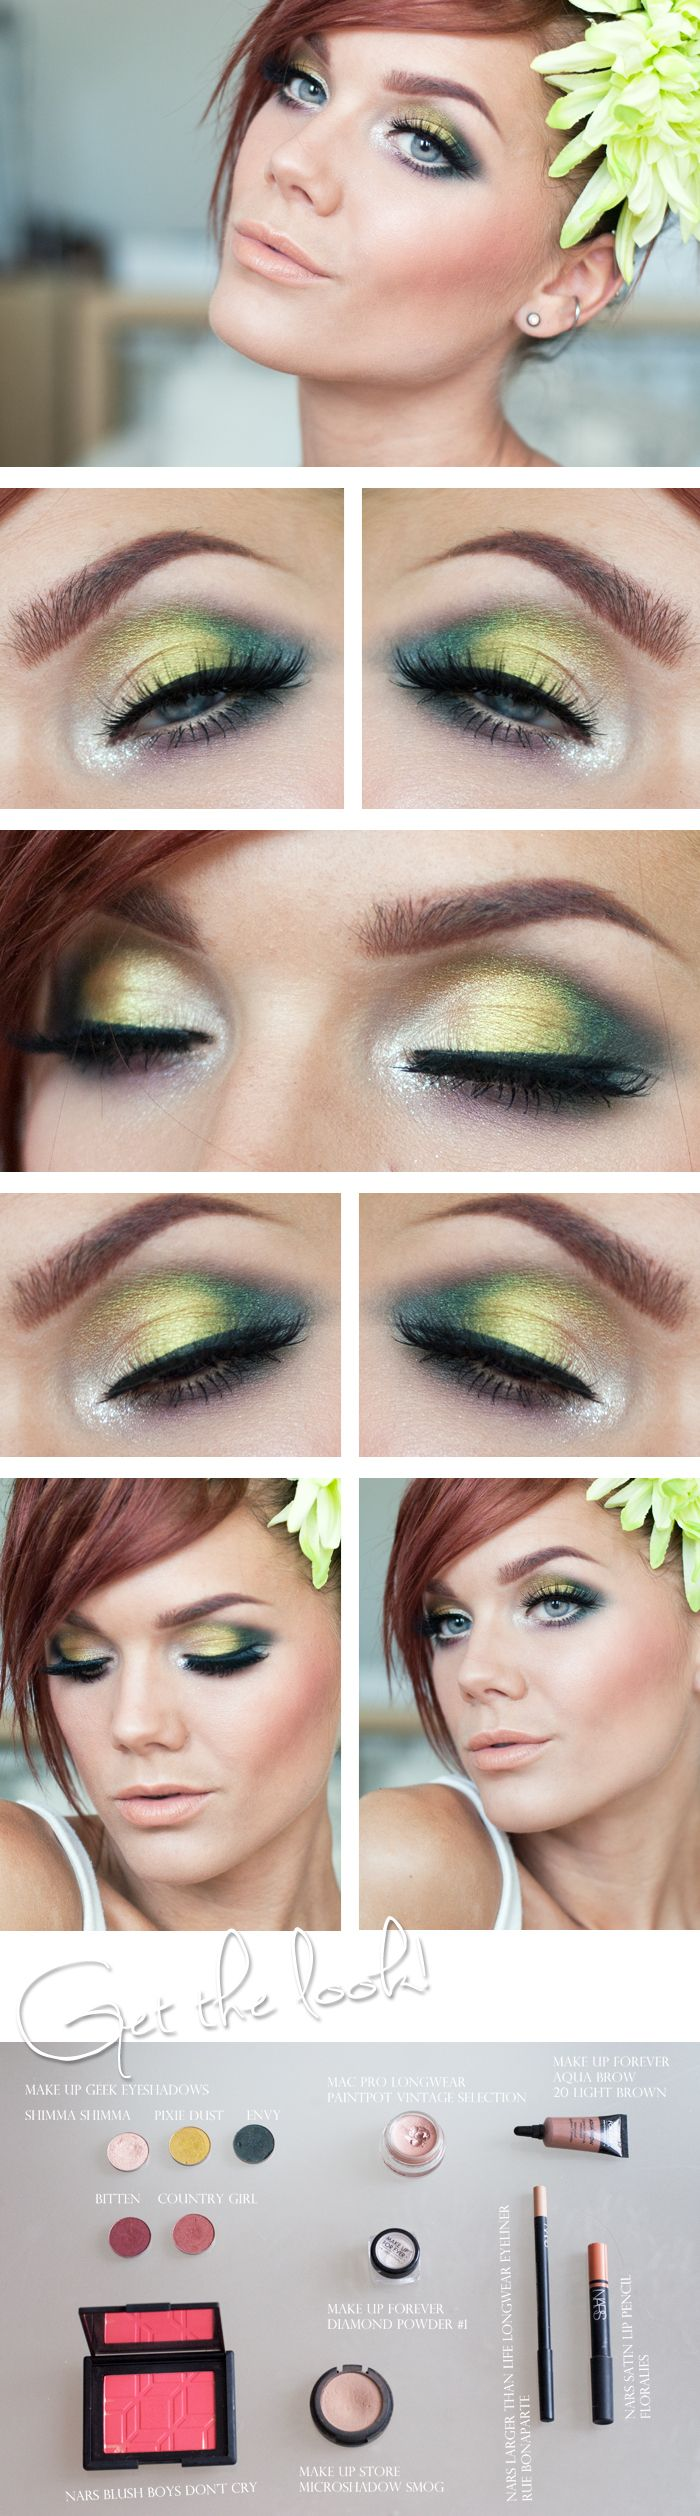 Green eyeshadow look - Linda Hallberg